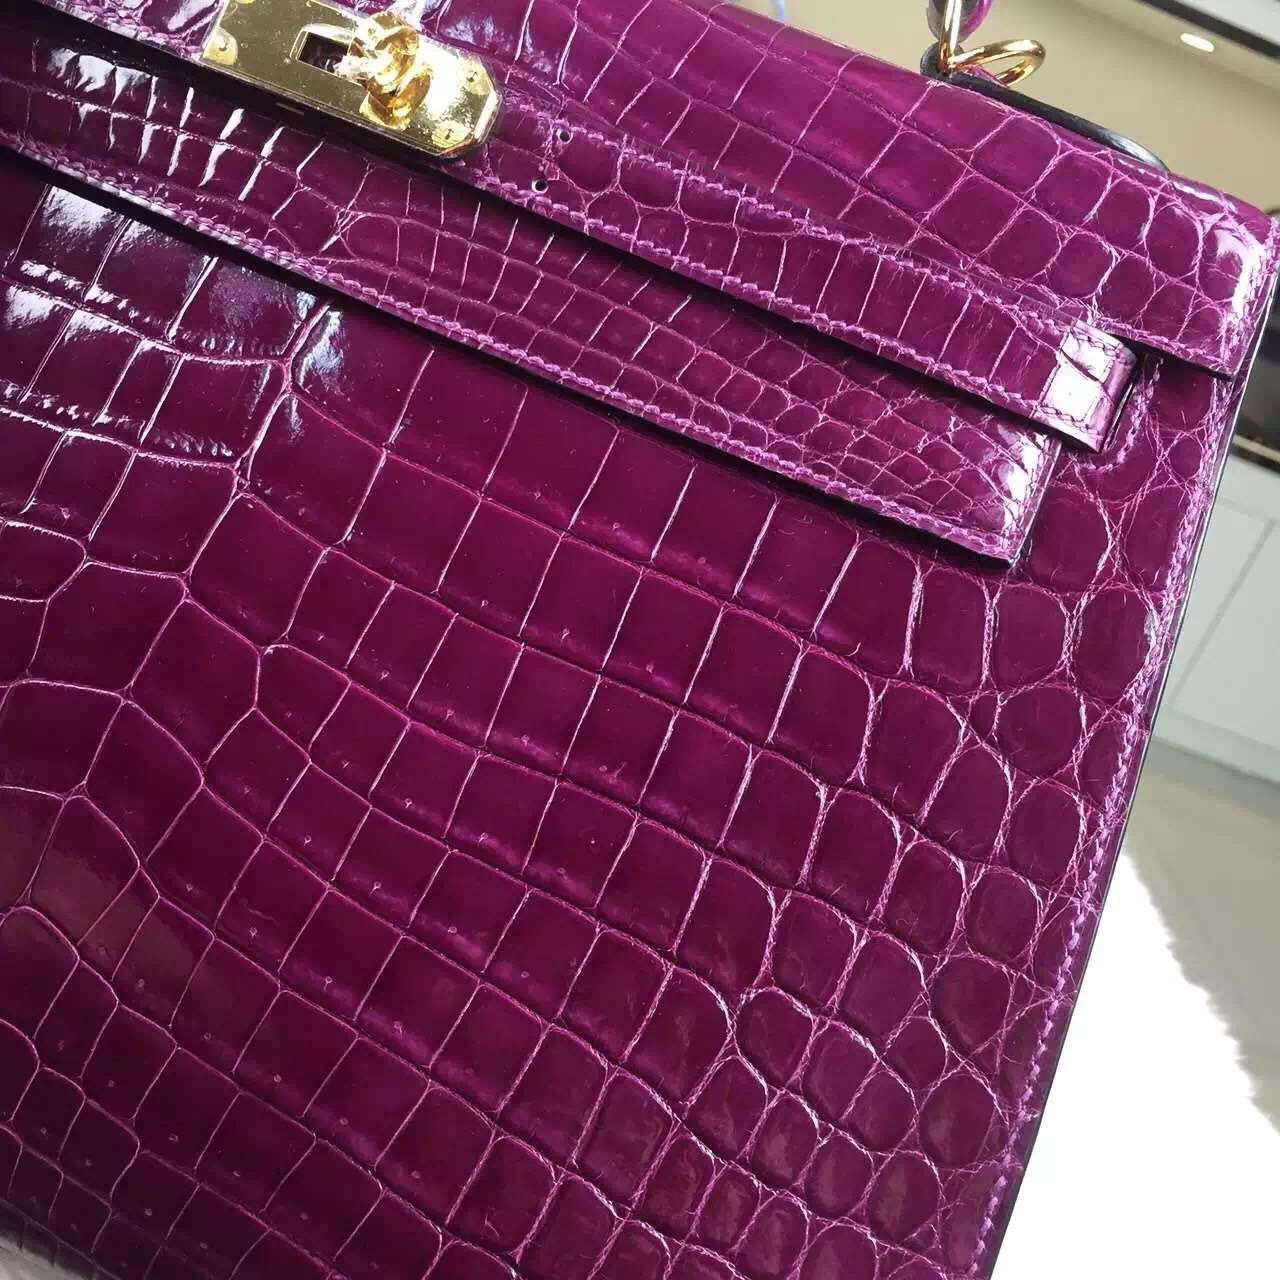 Online Shopping Hermes Crocodile Shiny Skin Kelly32CM in Grape Purple